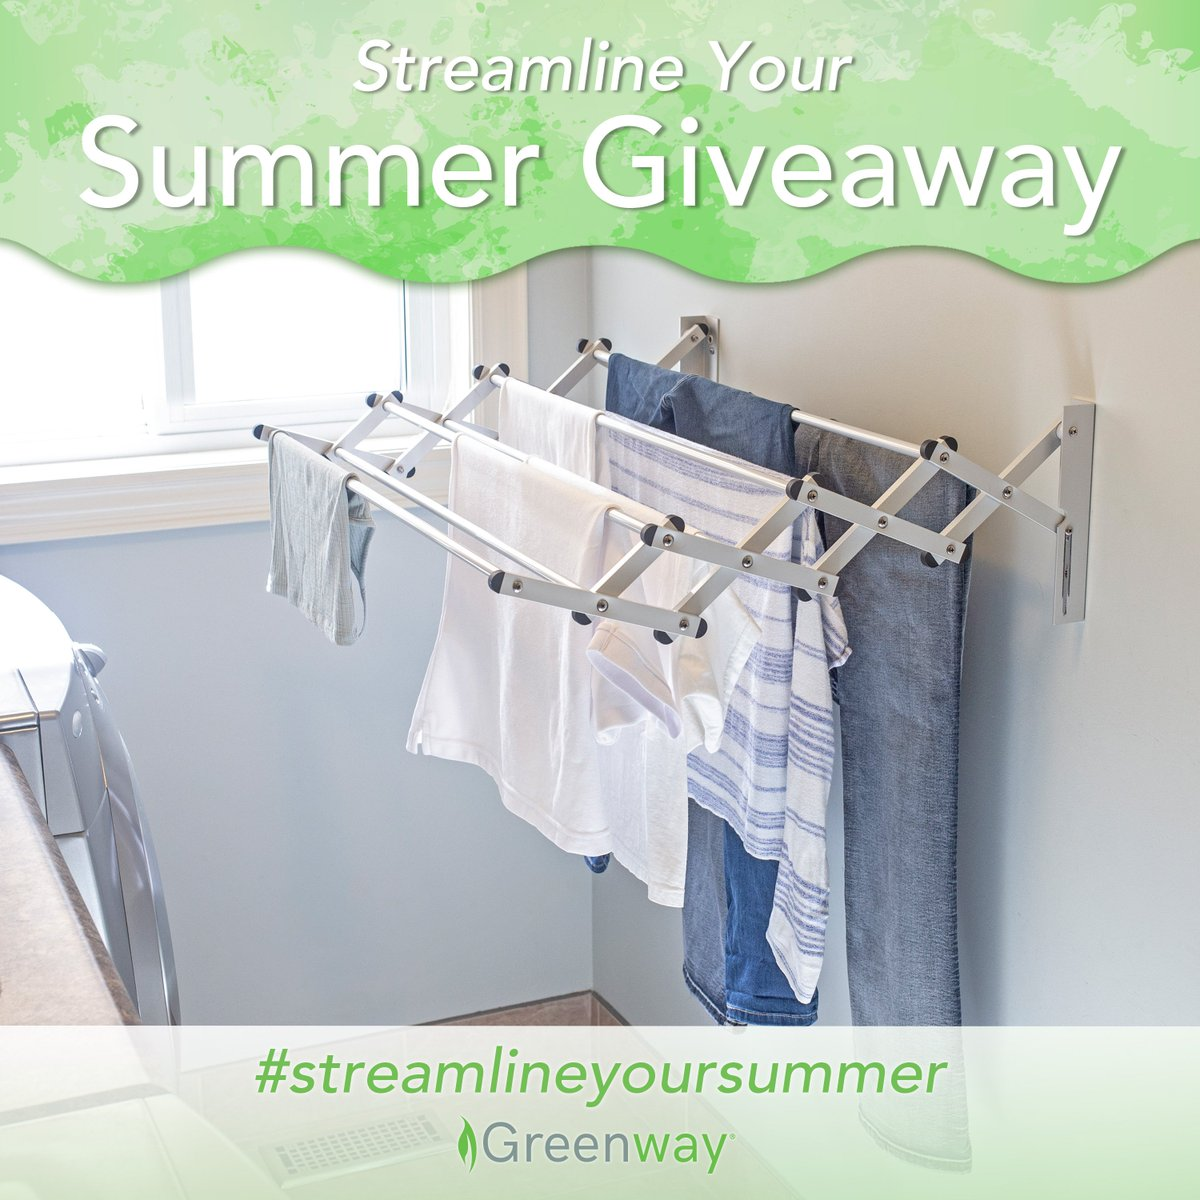 Whether it be poolside or in the laundry room, our versatile Indoor/Outdoor Foldable Drying Rack helps you keep your home clean and organized so you can stay carefree all summer! Enter for a chance to win your own here https://t.co/zTomZtpWQZ #streamlineyoursummer https://t.co/yLoAHEzflr